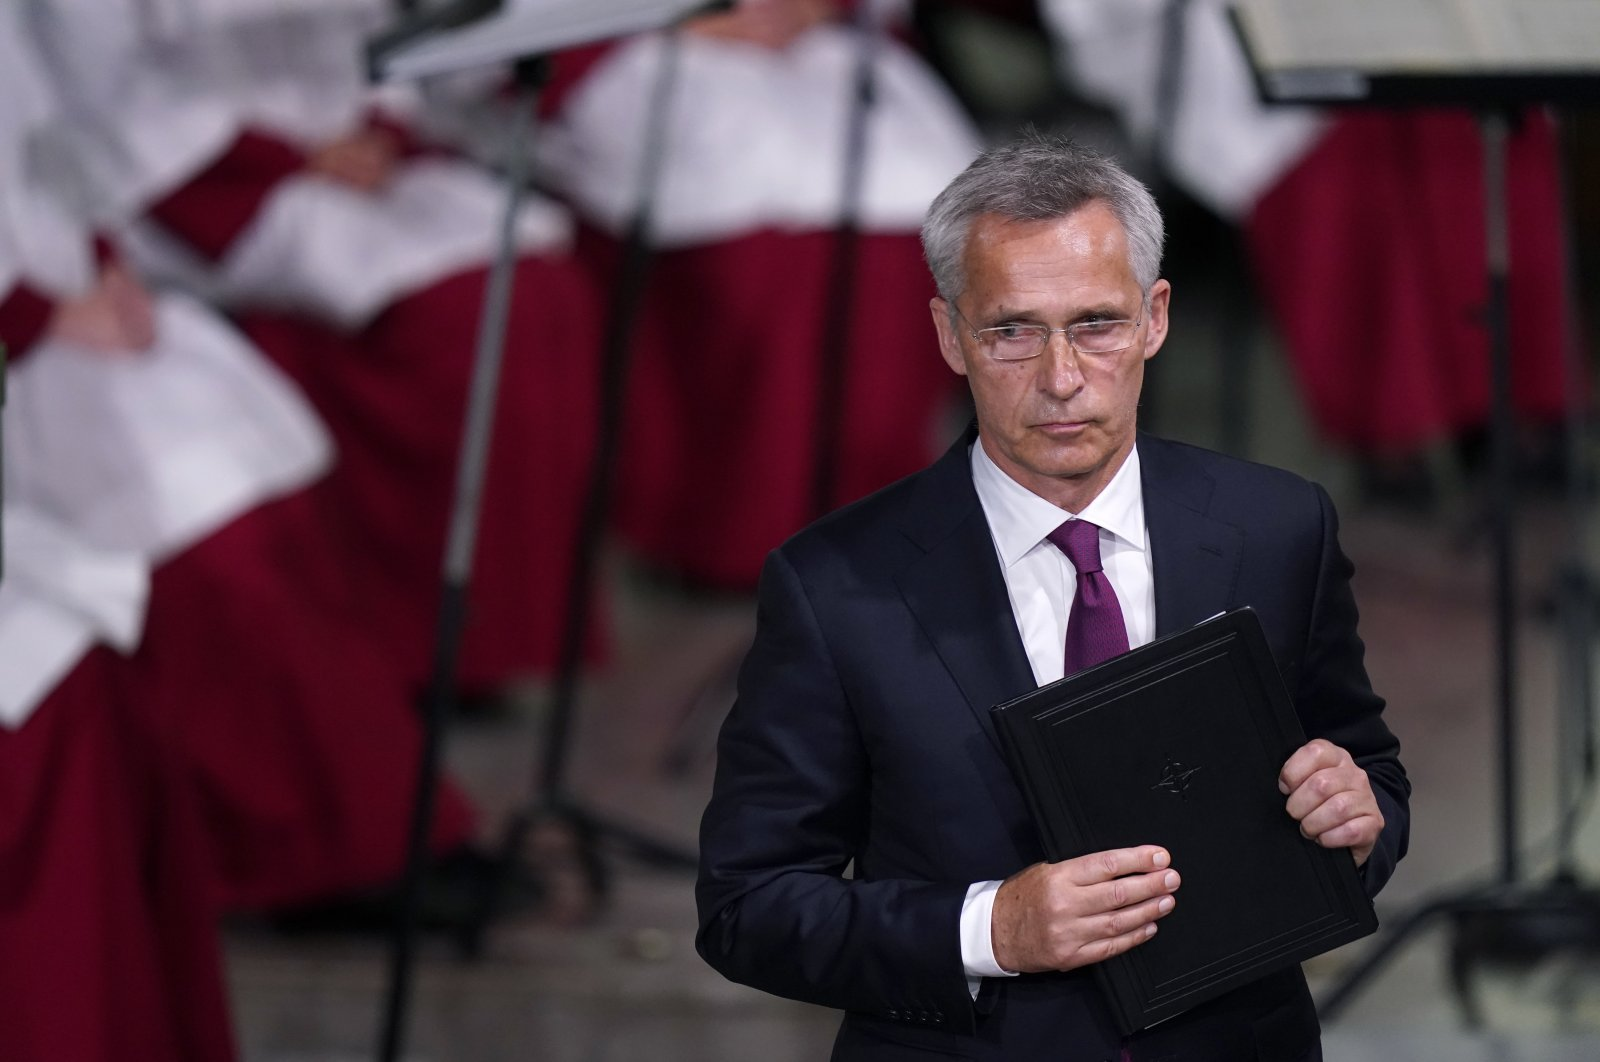 NATO Secretary-General Jens Stoltenberg looks on after delivering his speech during the memorial service at Oslo Cathedral, on the 10-year anniversary of the terrorist attack by Anders Breivik, in Oslo, Norway, July 22, 2021. (NTB scanpix via AP)